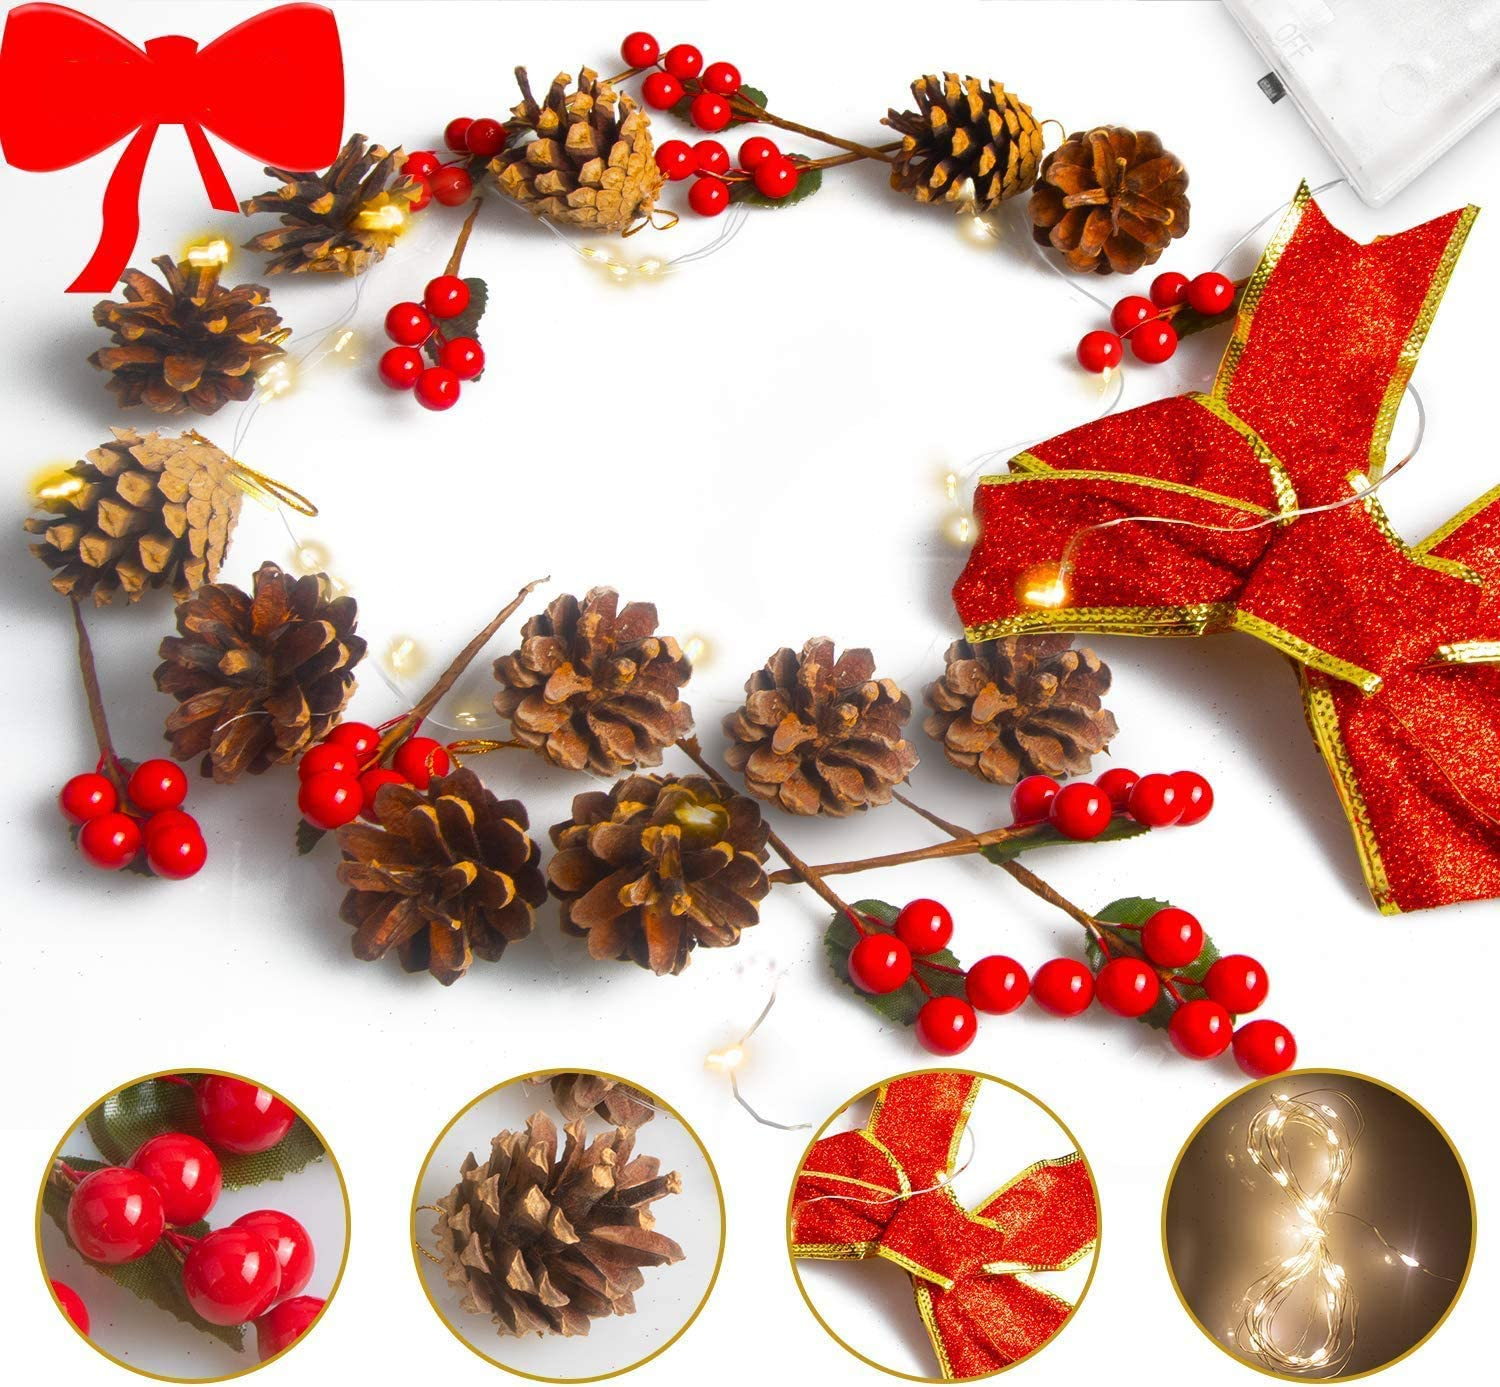 Ponwec Christmas Tree Ornaments, Christmas Tree Door Hanging Décor with 12 Pine Cones 10 Red Berries 2 LED String Lights and 1 Red Glitter Bow for Xmas Wreath Holiday Wedding Party DIY Crafts